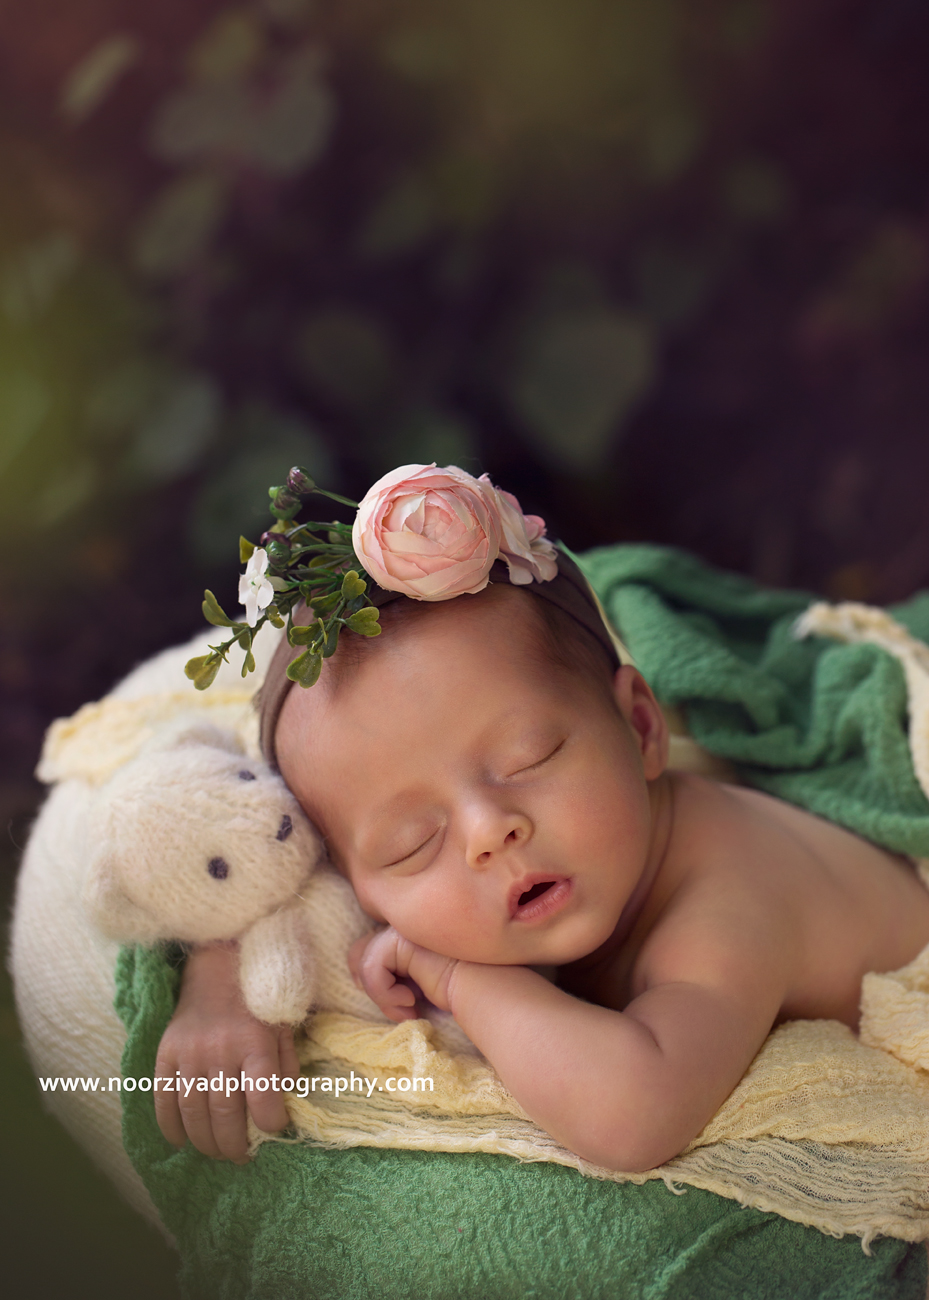 Baby portrait photography by noor ziyad in amman jordan